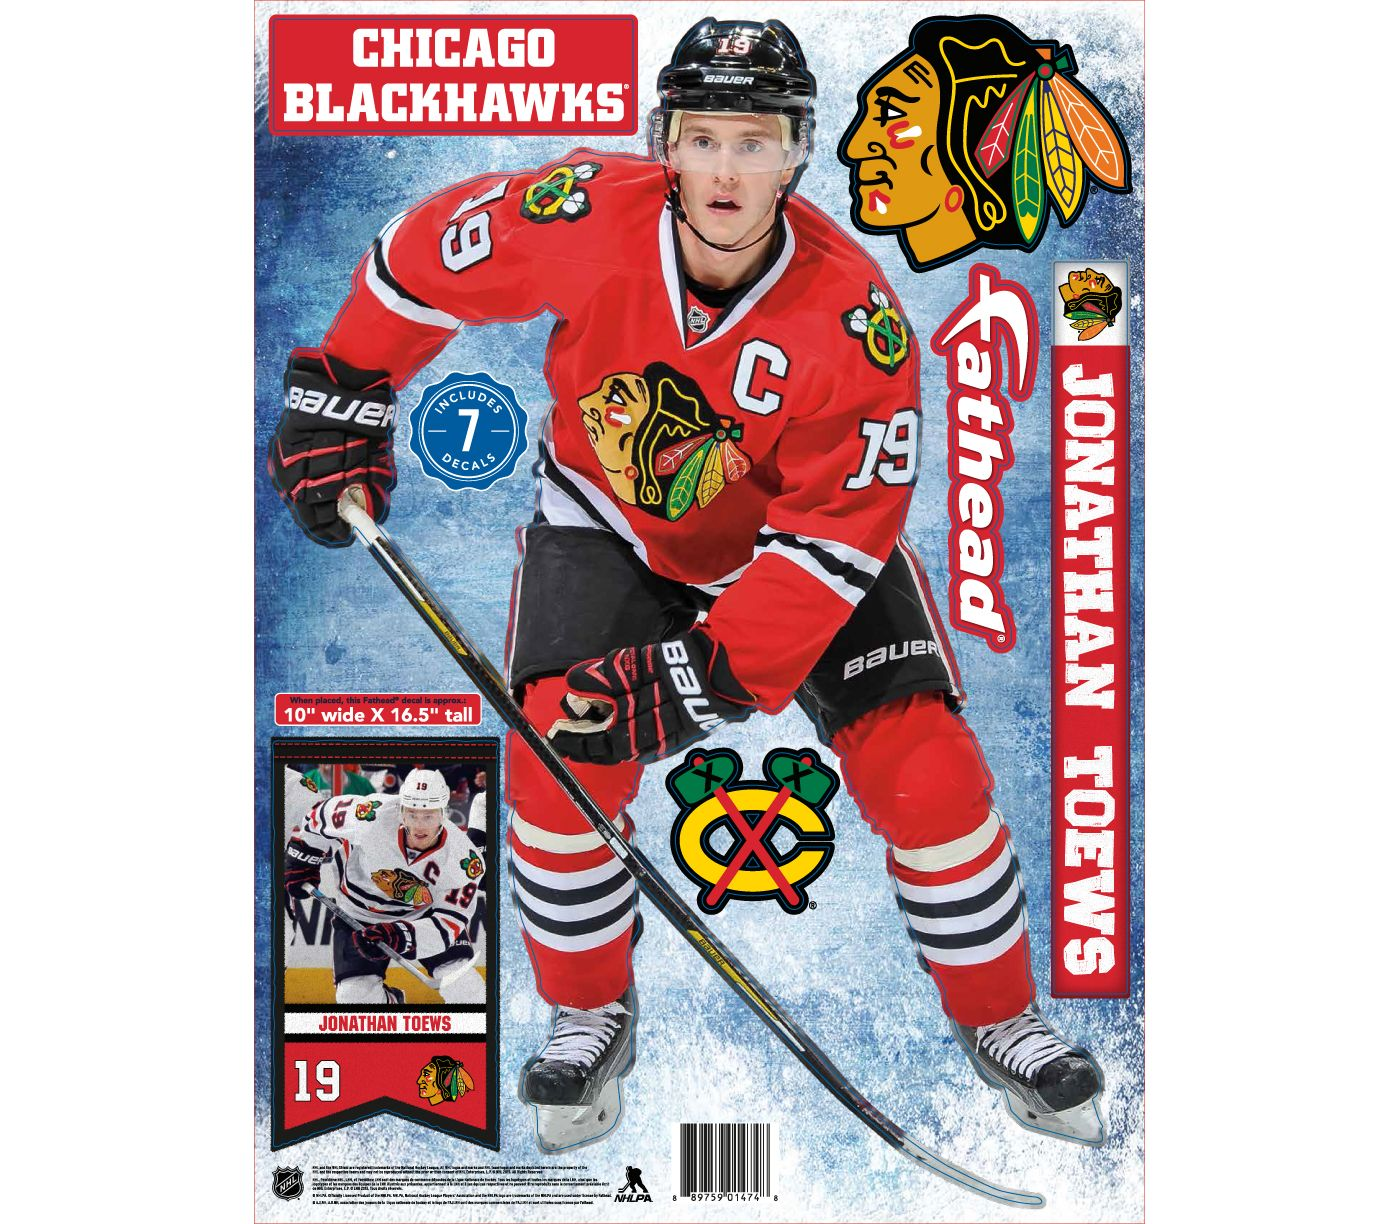 Fathead Chicago Blackhawks Jonathan Toews Player Wall Decal